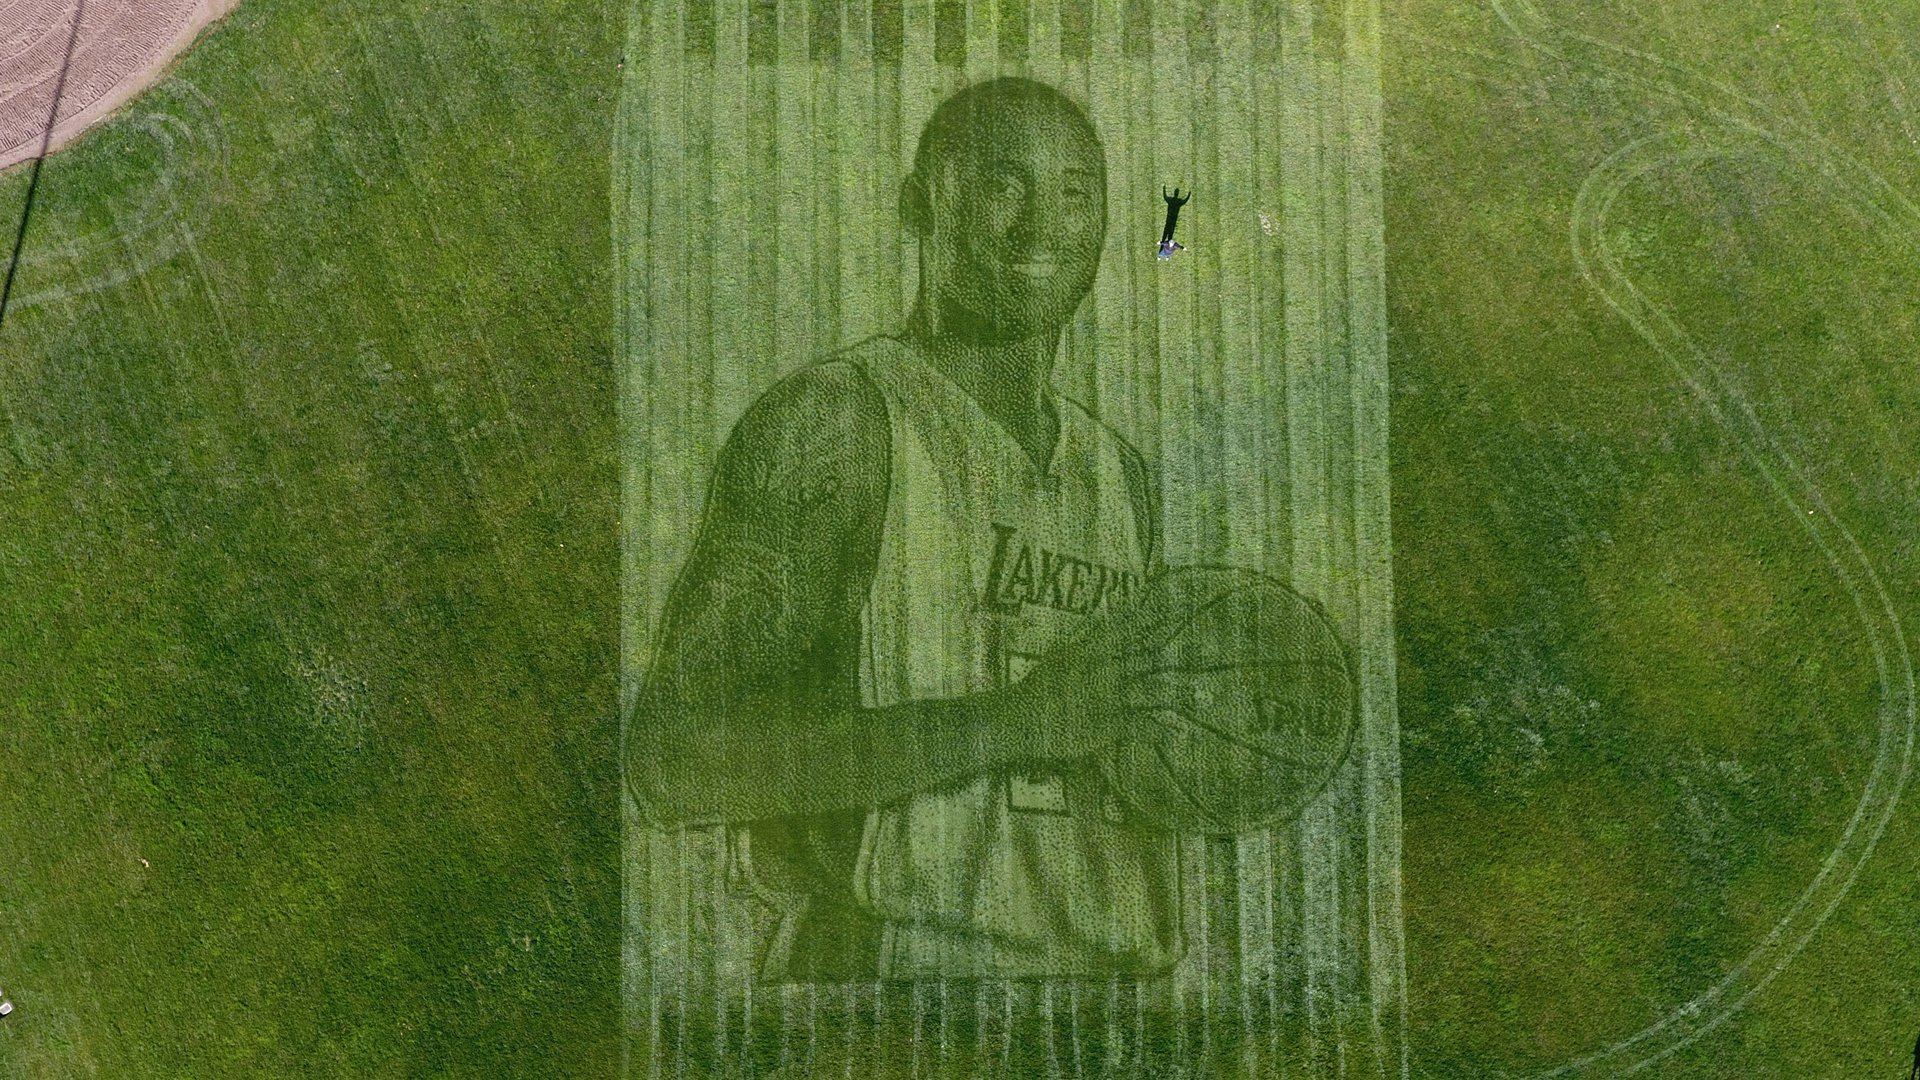 Kelli Pearson and her husband, Pete Davis, created a 115-foot tall mural of Kobe Bryant in a grass field in Pleasanton. (Credit: Kelli Pearson)